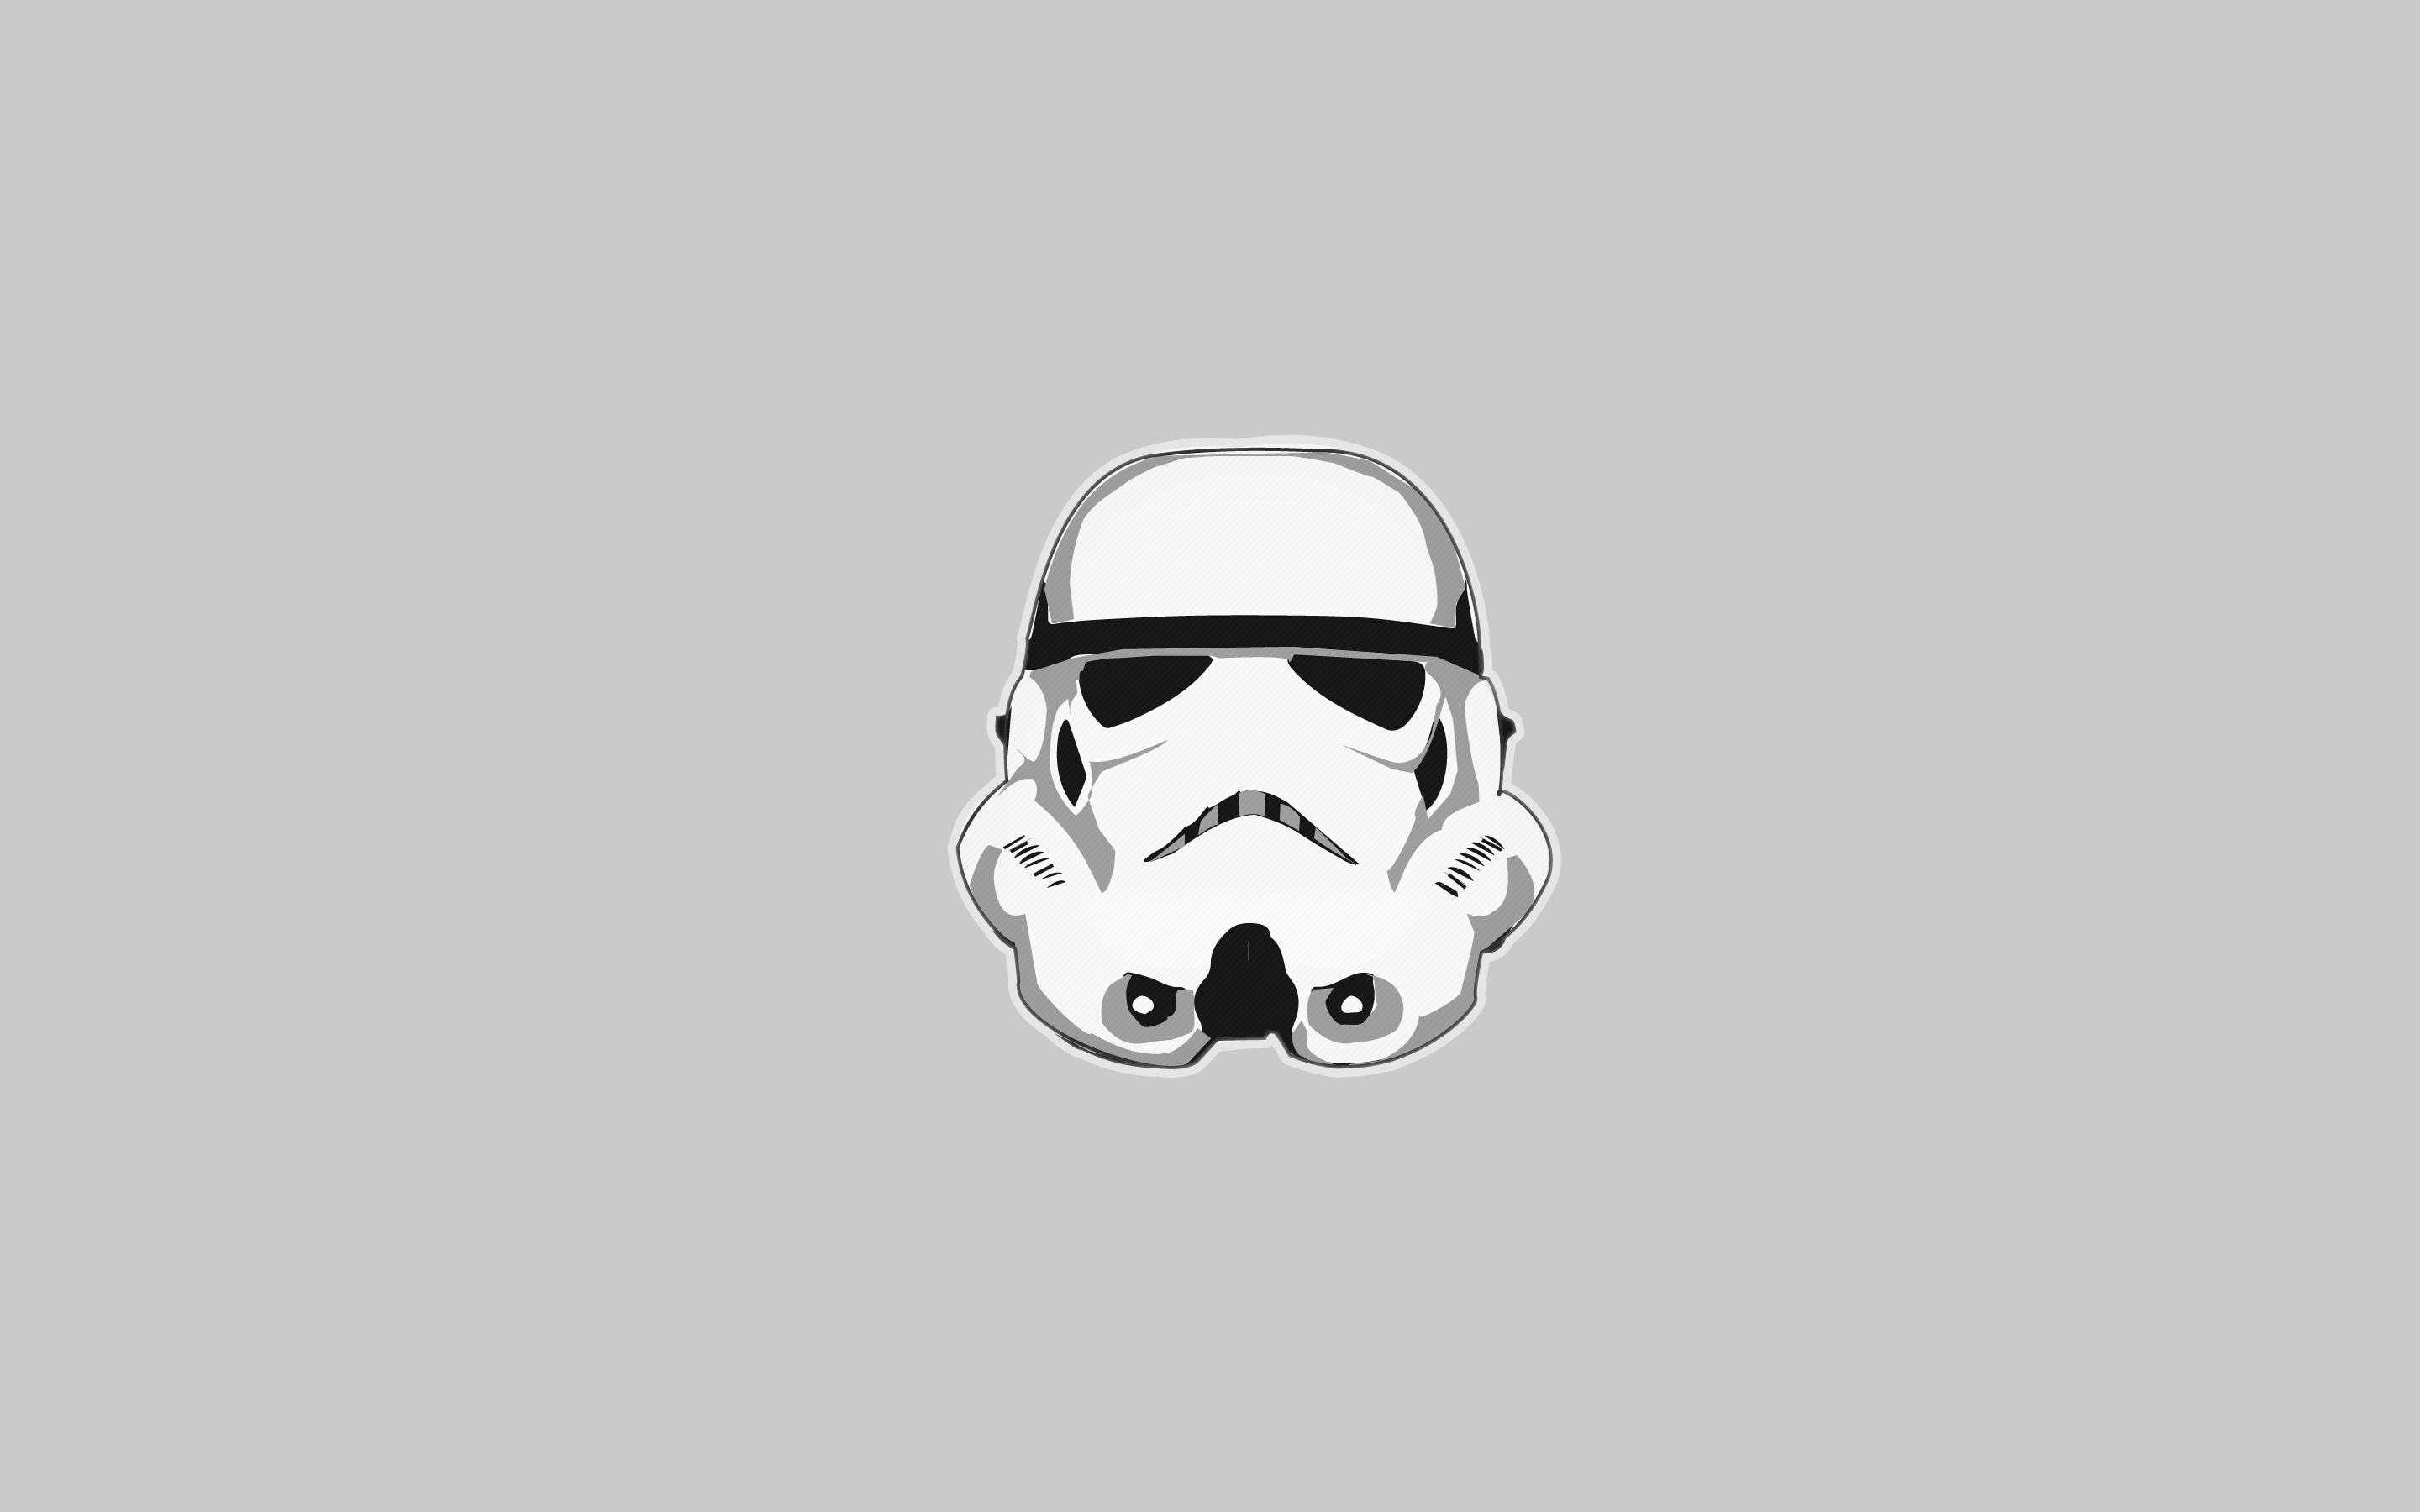 Stormtrooper Gray Wallpaper 2880x1800 by raifss on DeviantArt